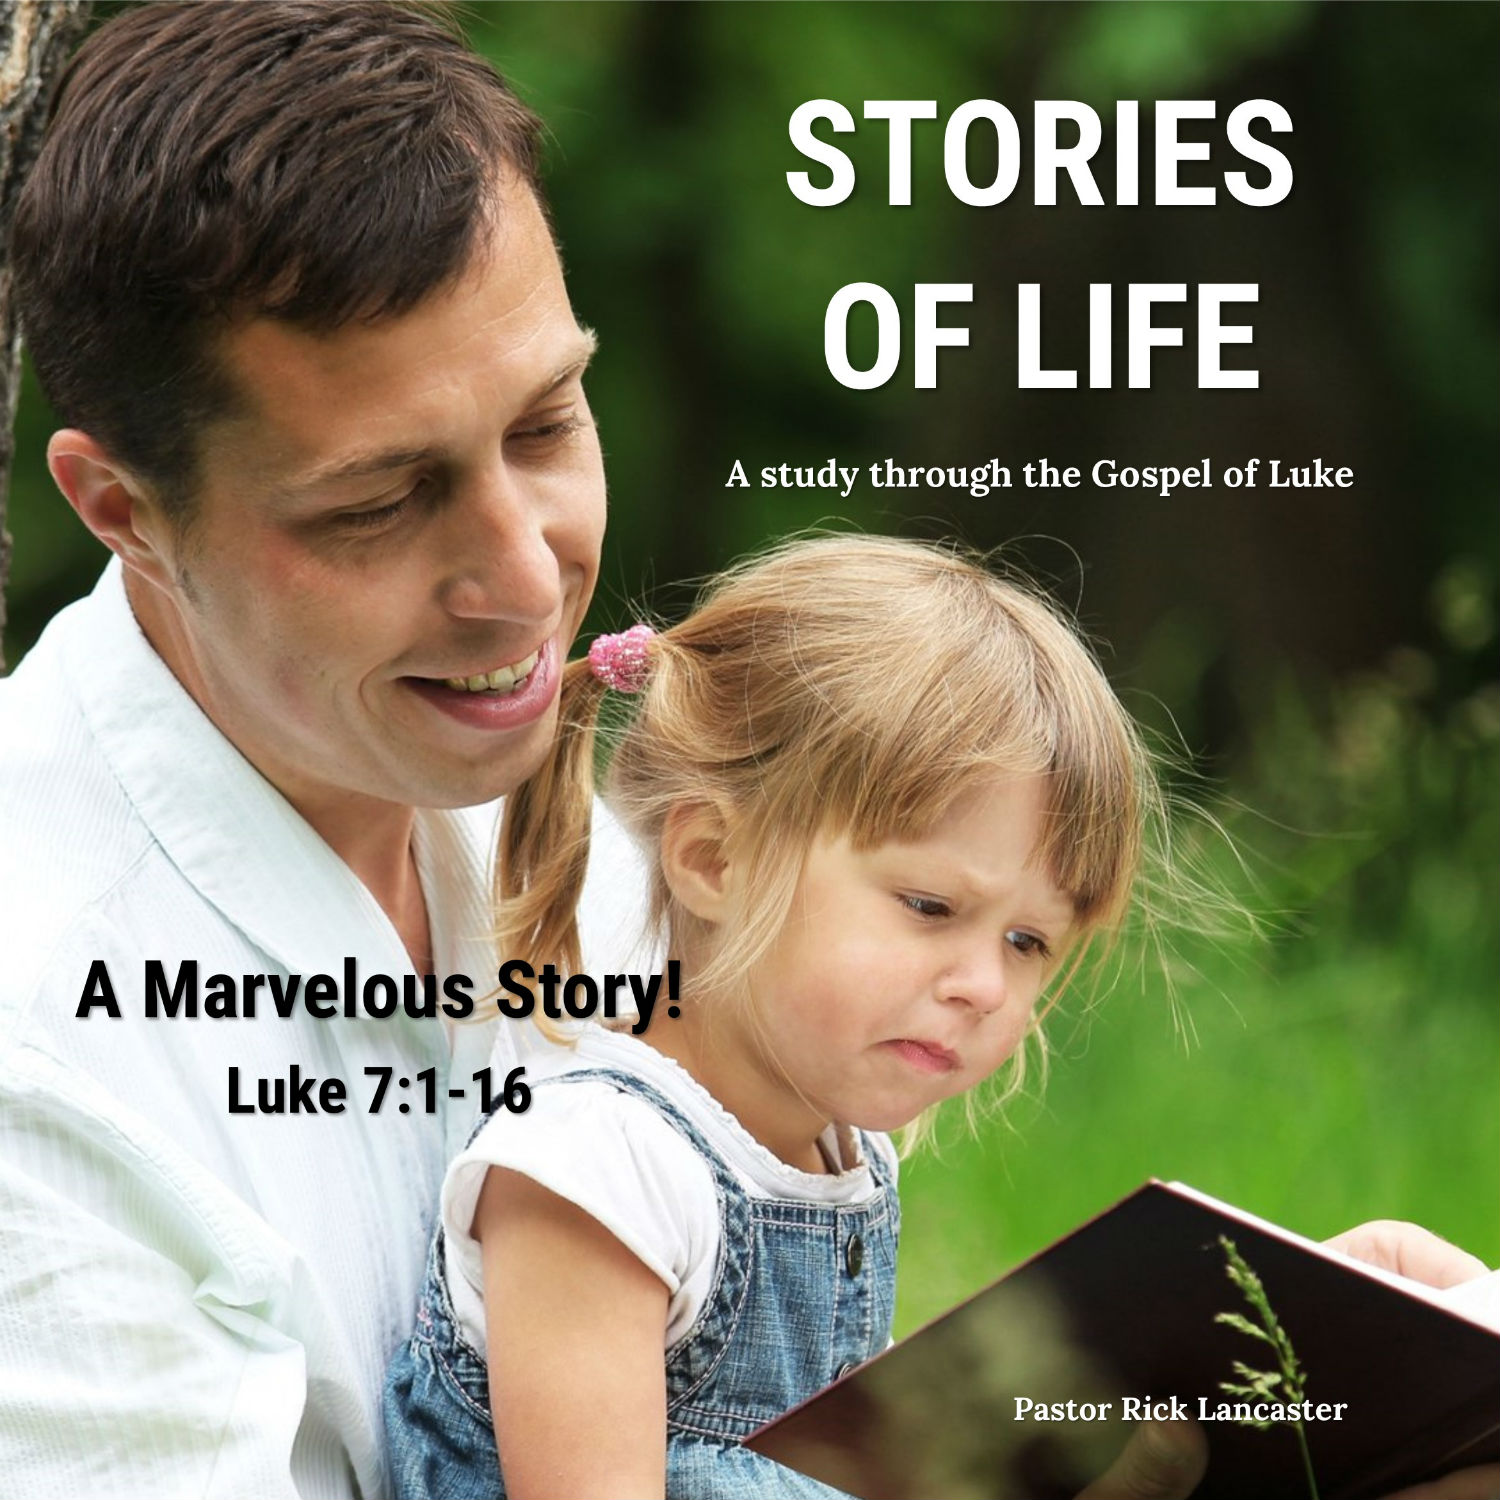 A Marvelous Story - Luke 7:1-16 Image